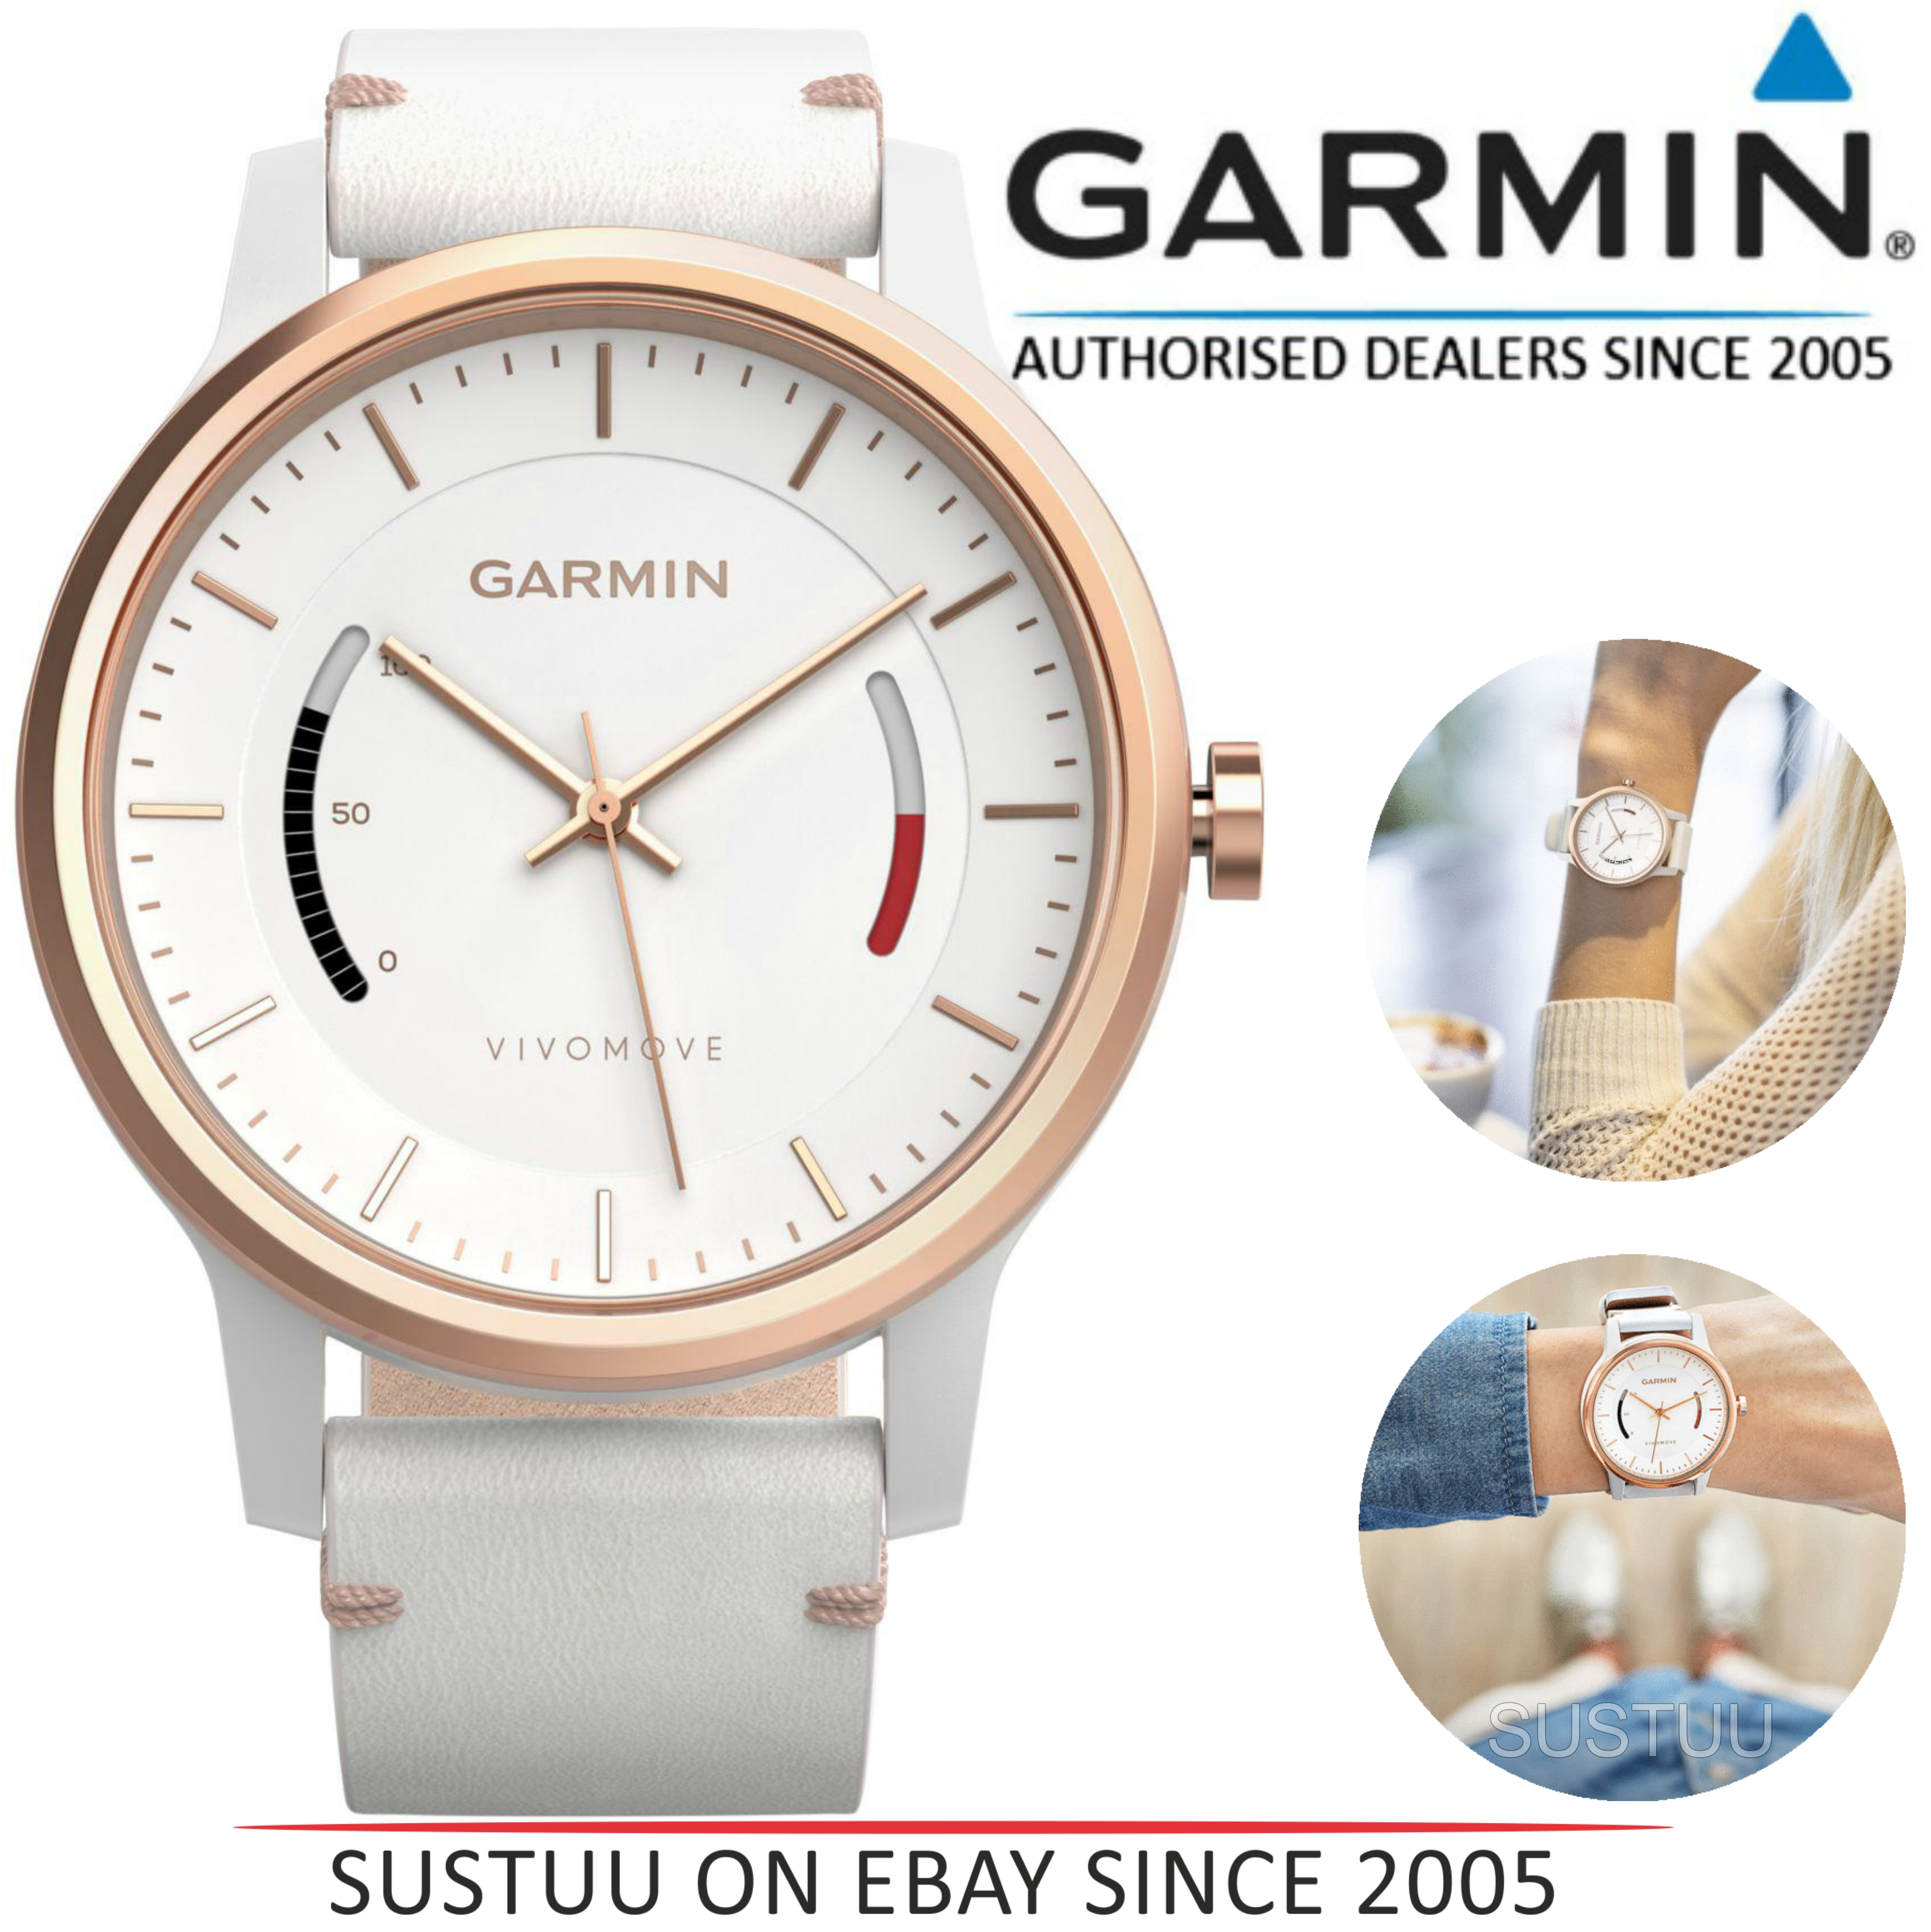 4b65758111f Details about Garmin Vivomove Classic Smart Watch│Activity Fitness  Tracker+White Leather Band